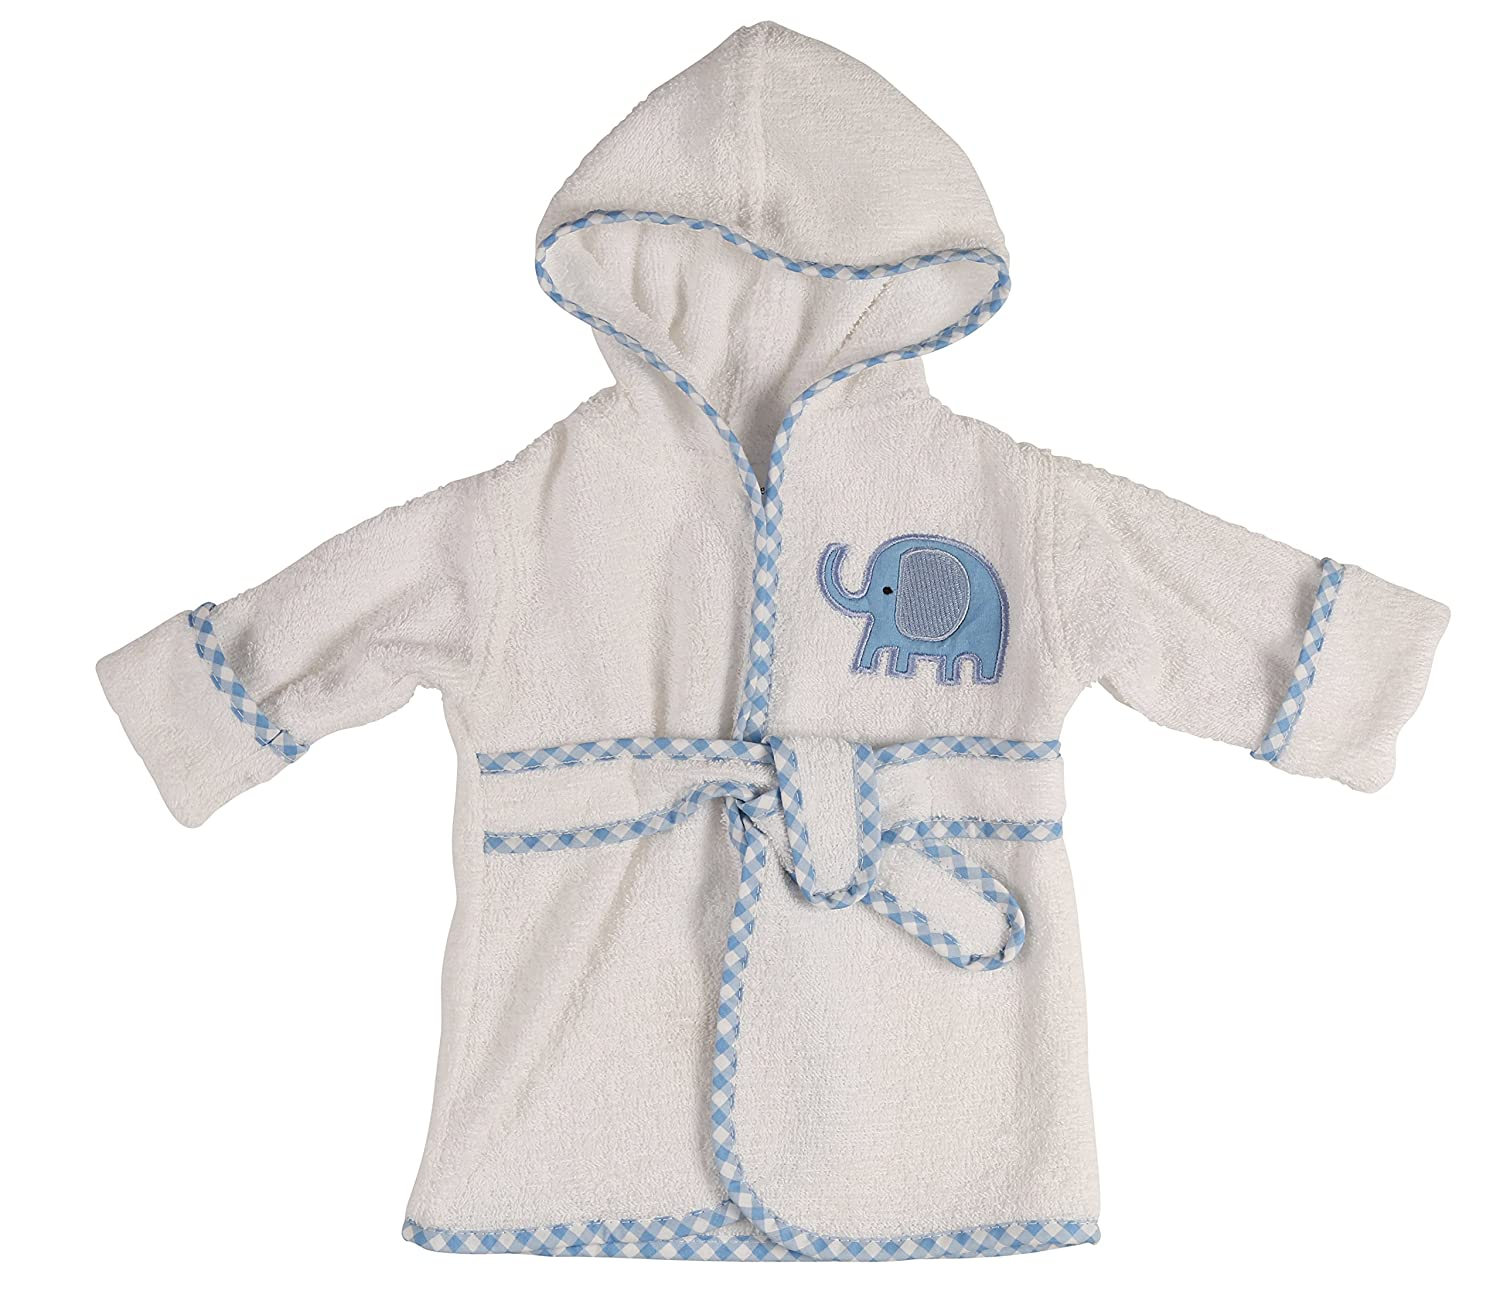 Little Beginnings Infant Plush Terry Bath Robe with Elephant Applique GS70708